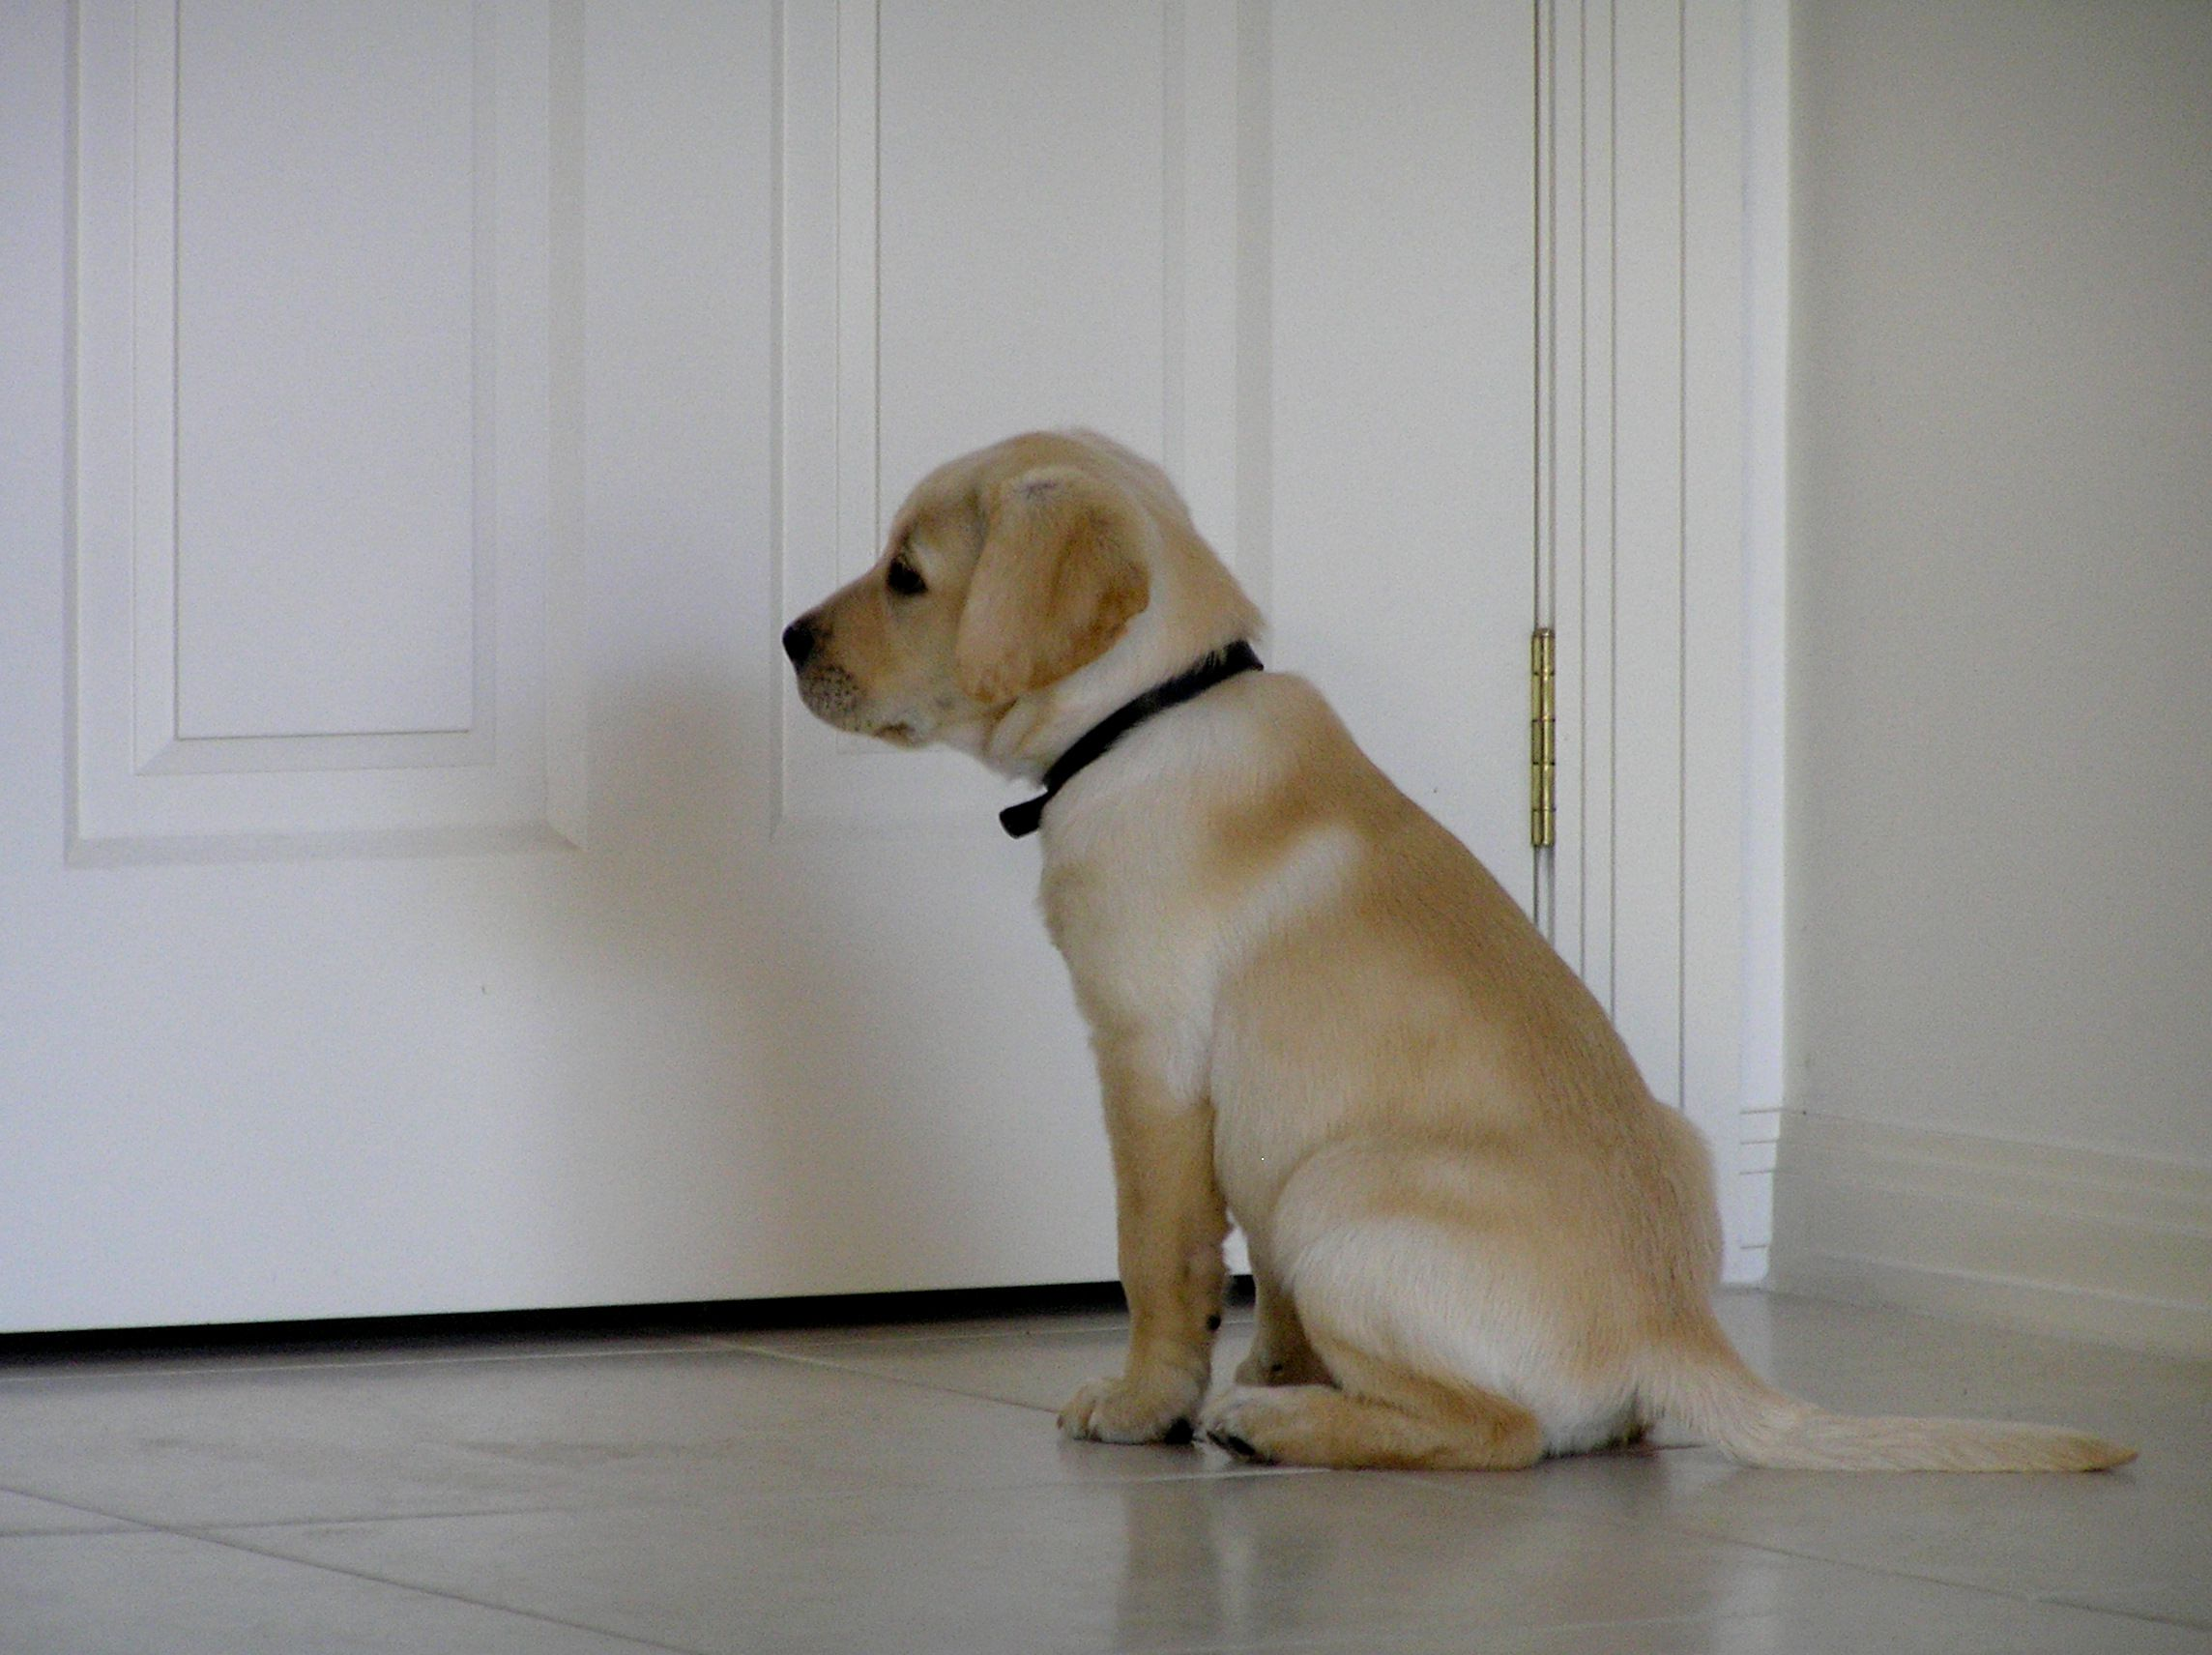 Teach your pup to stay calm when a door opens